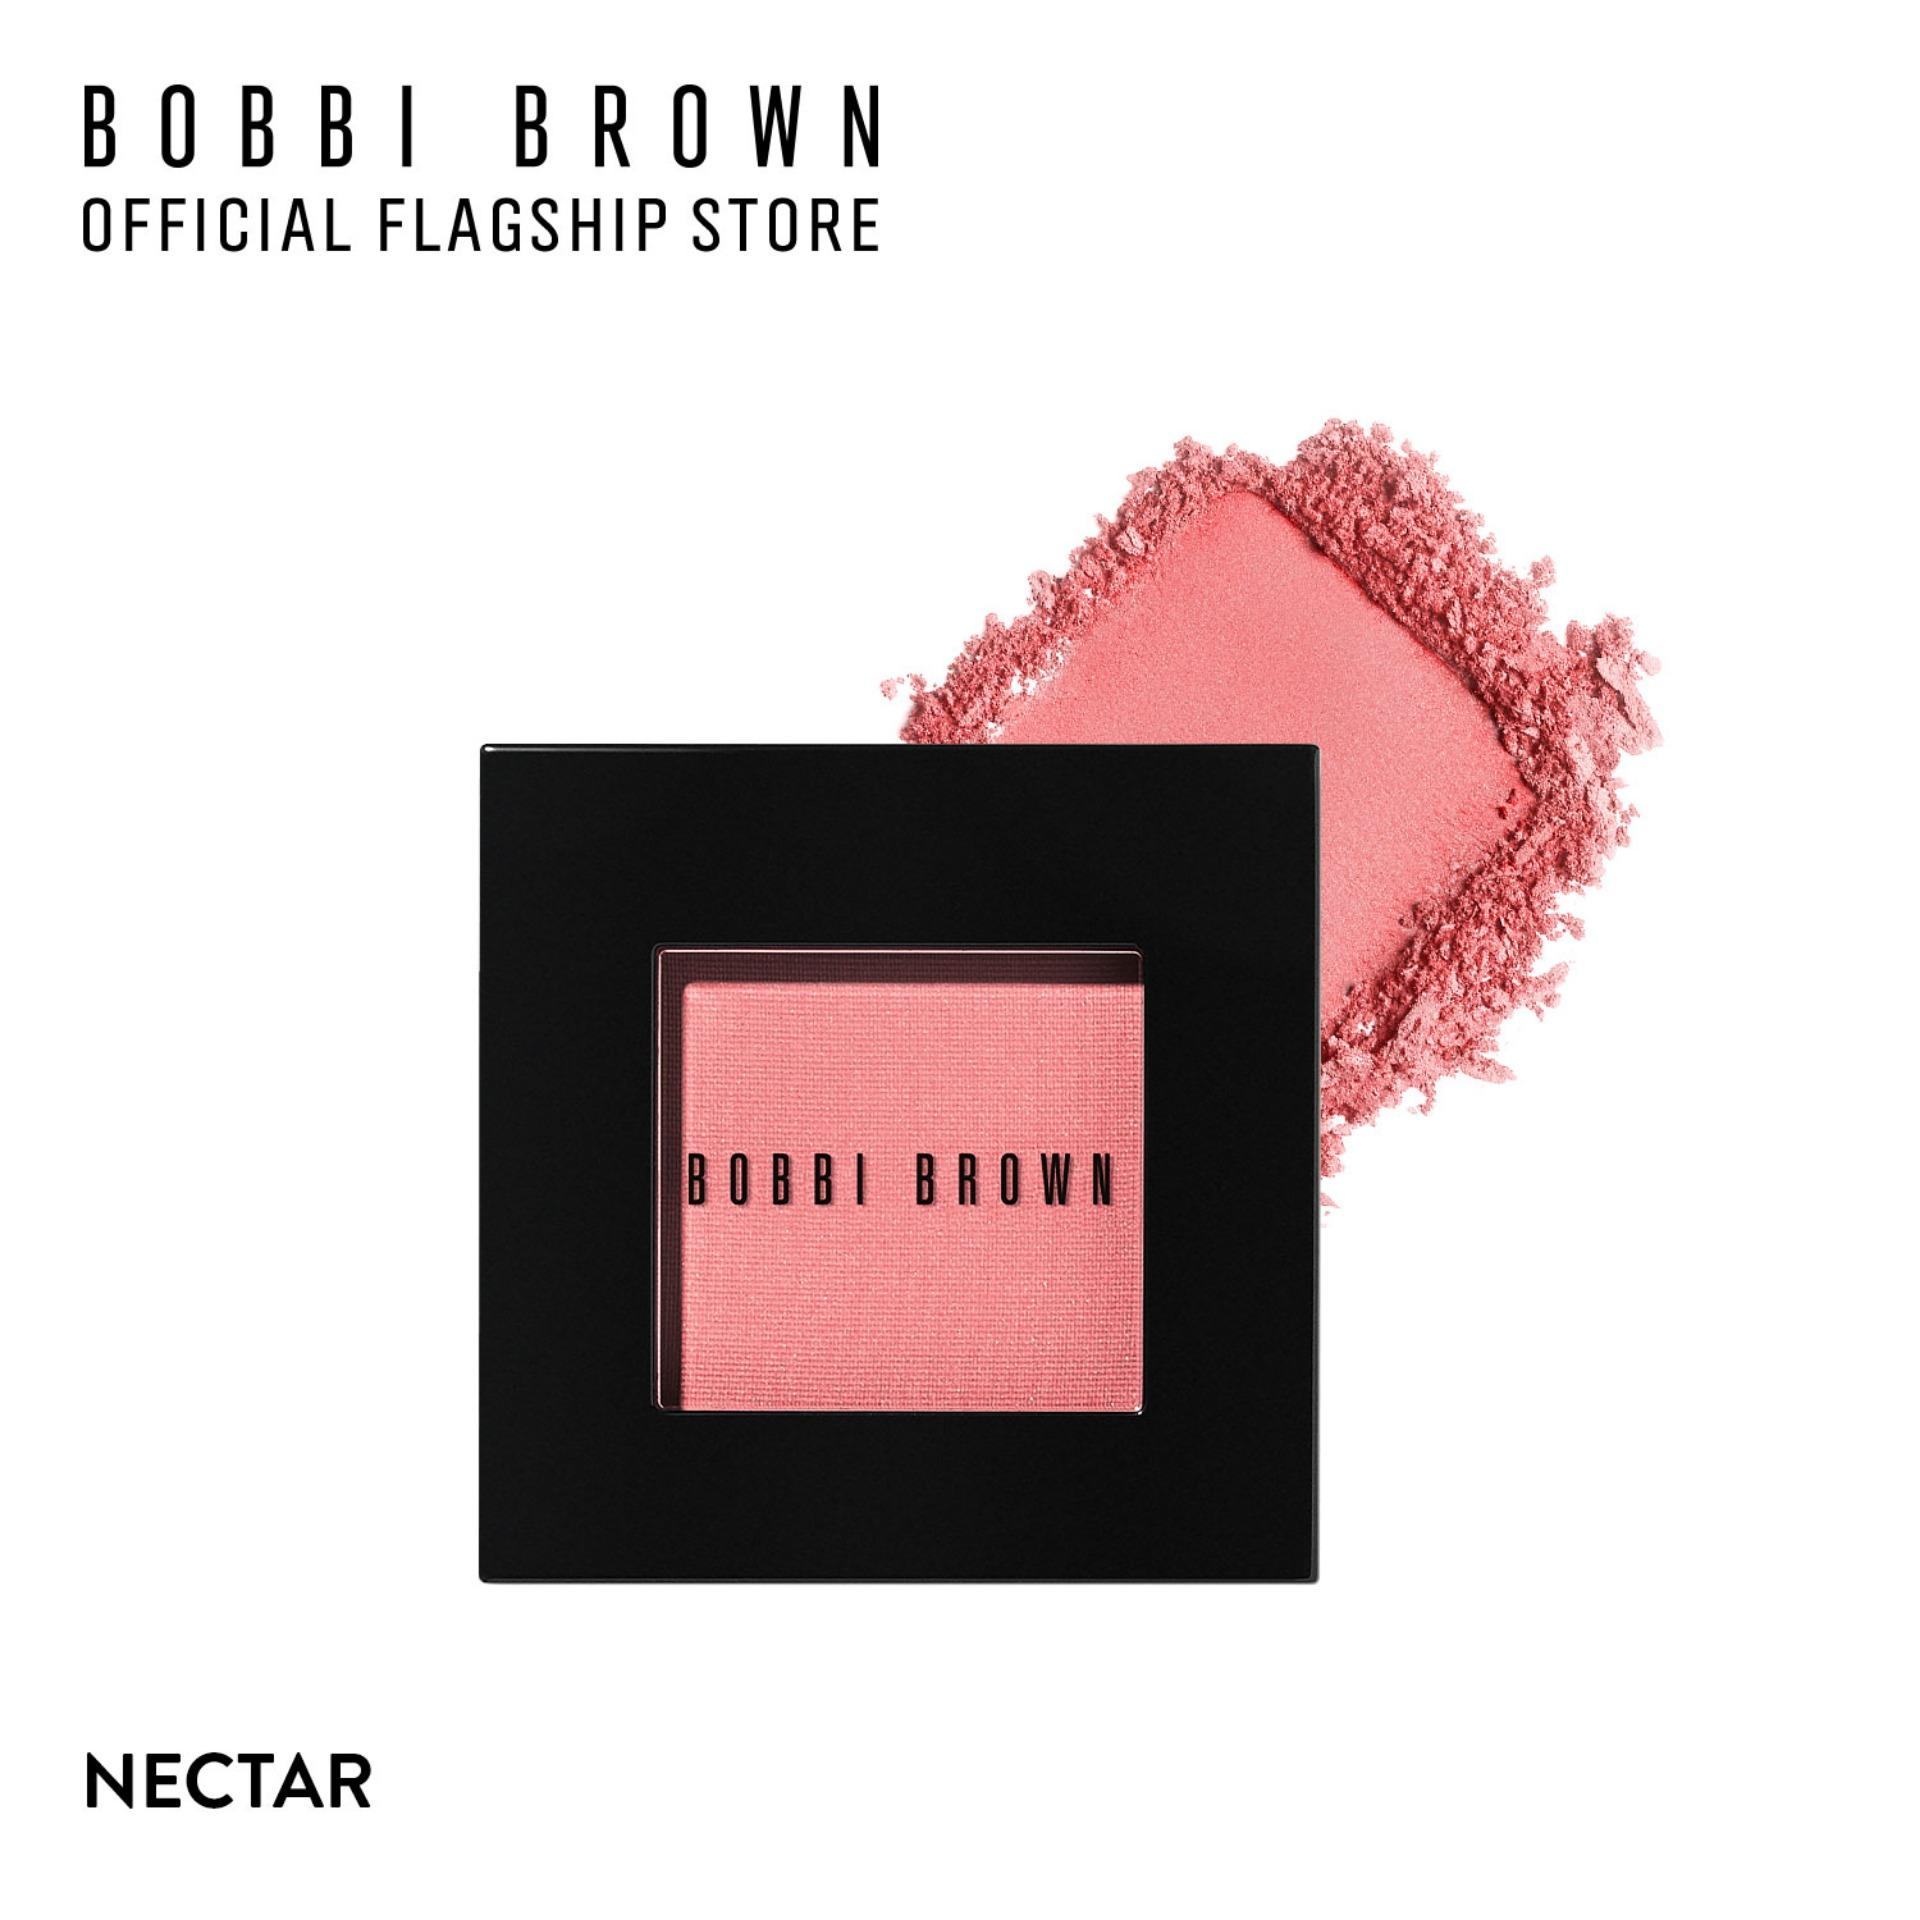 Phấn má hồng Bobbi Brown Blush 3.7g